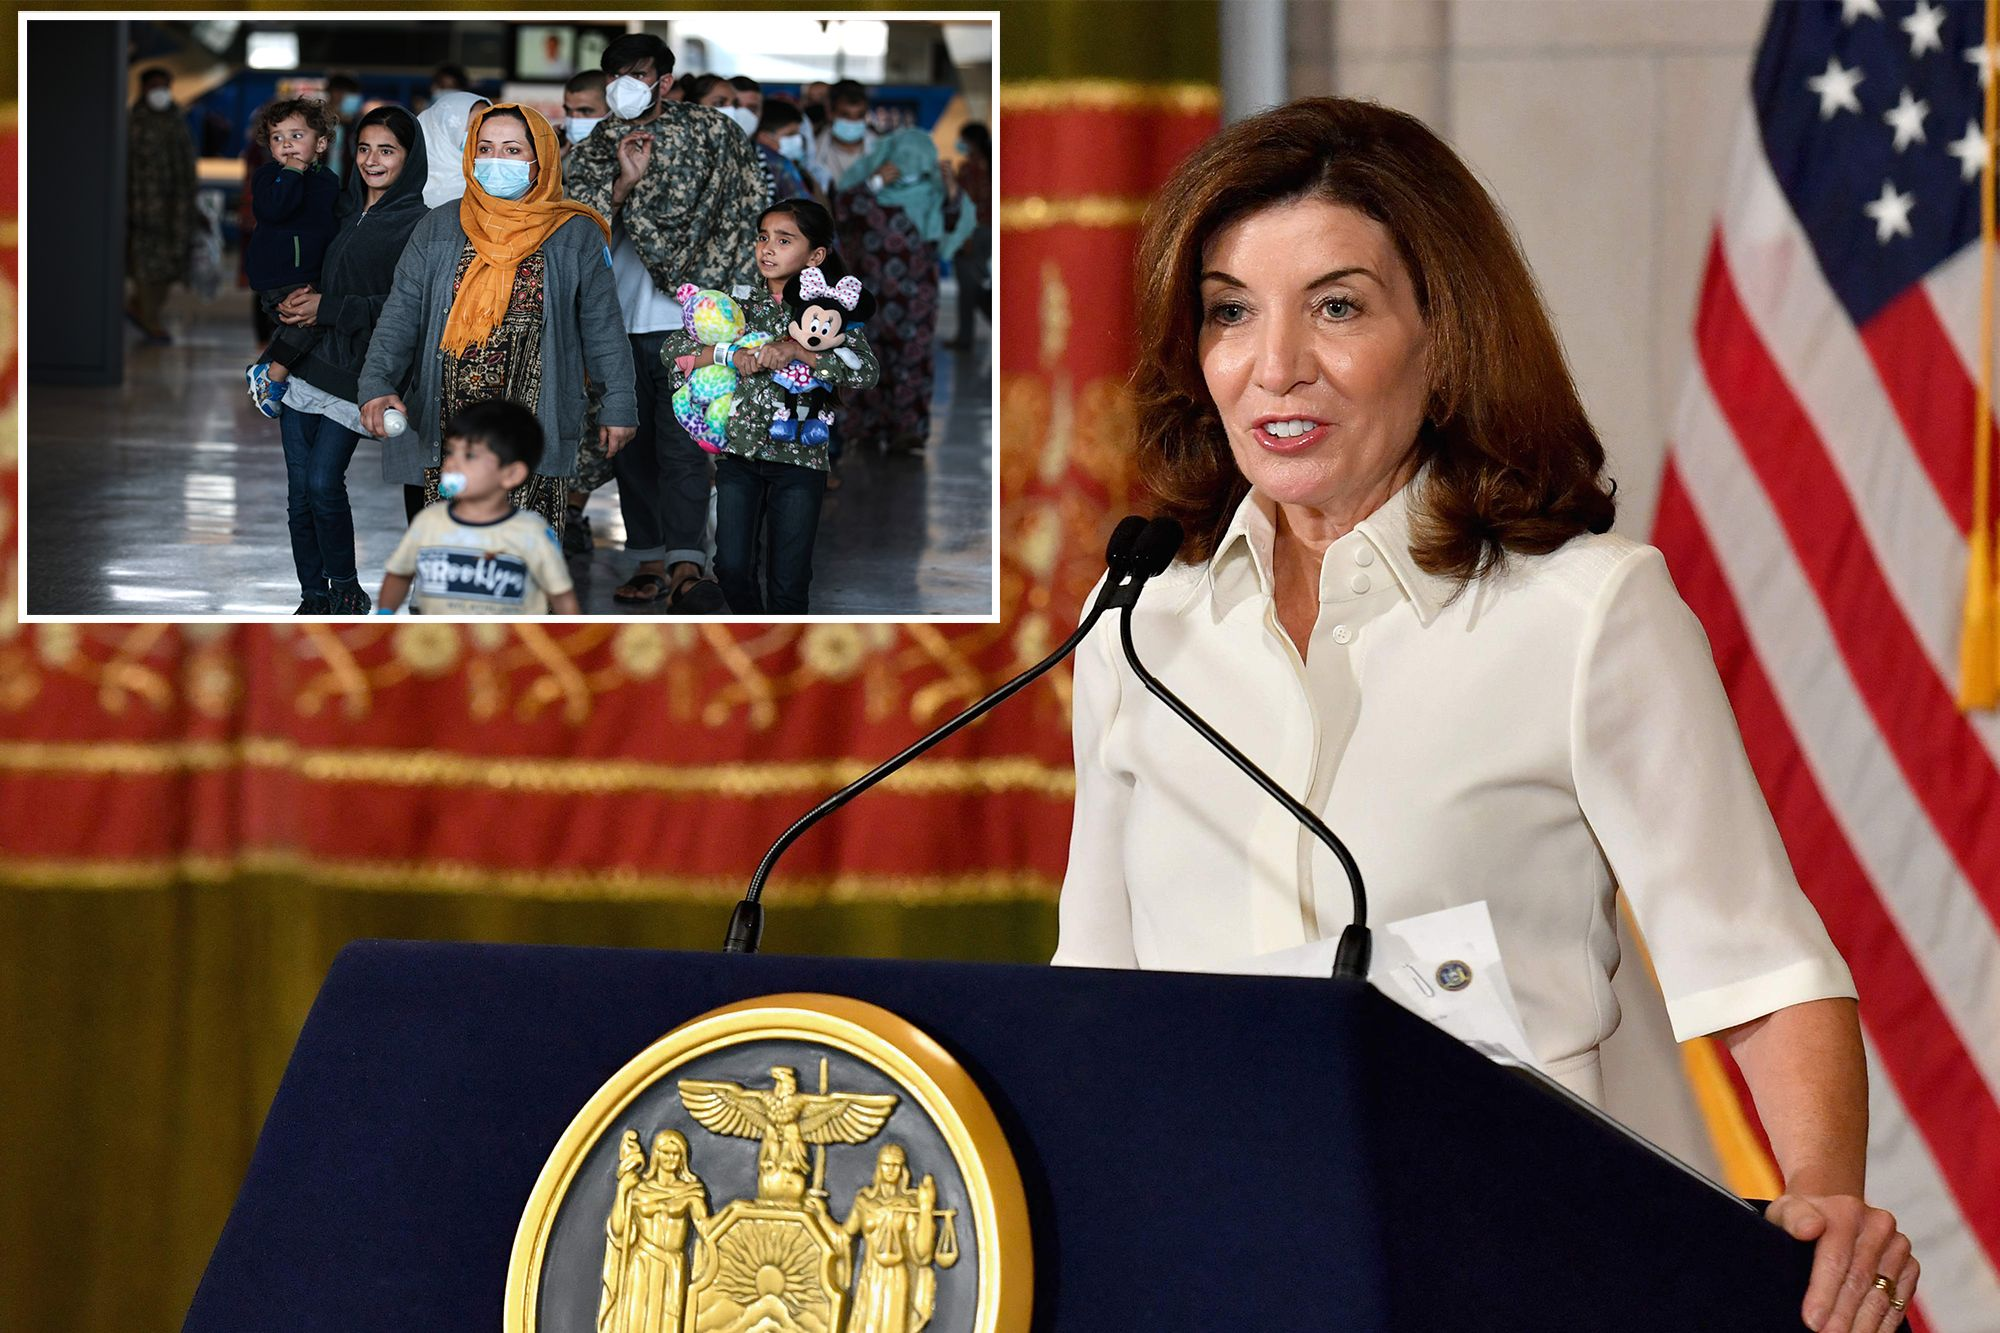 New York Set To Welcome More Than 860 Afghan Refugees: Says Hochul